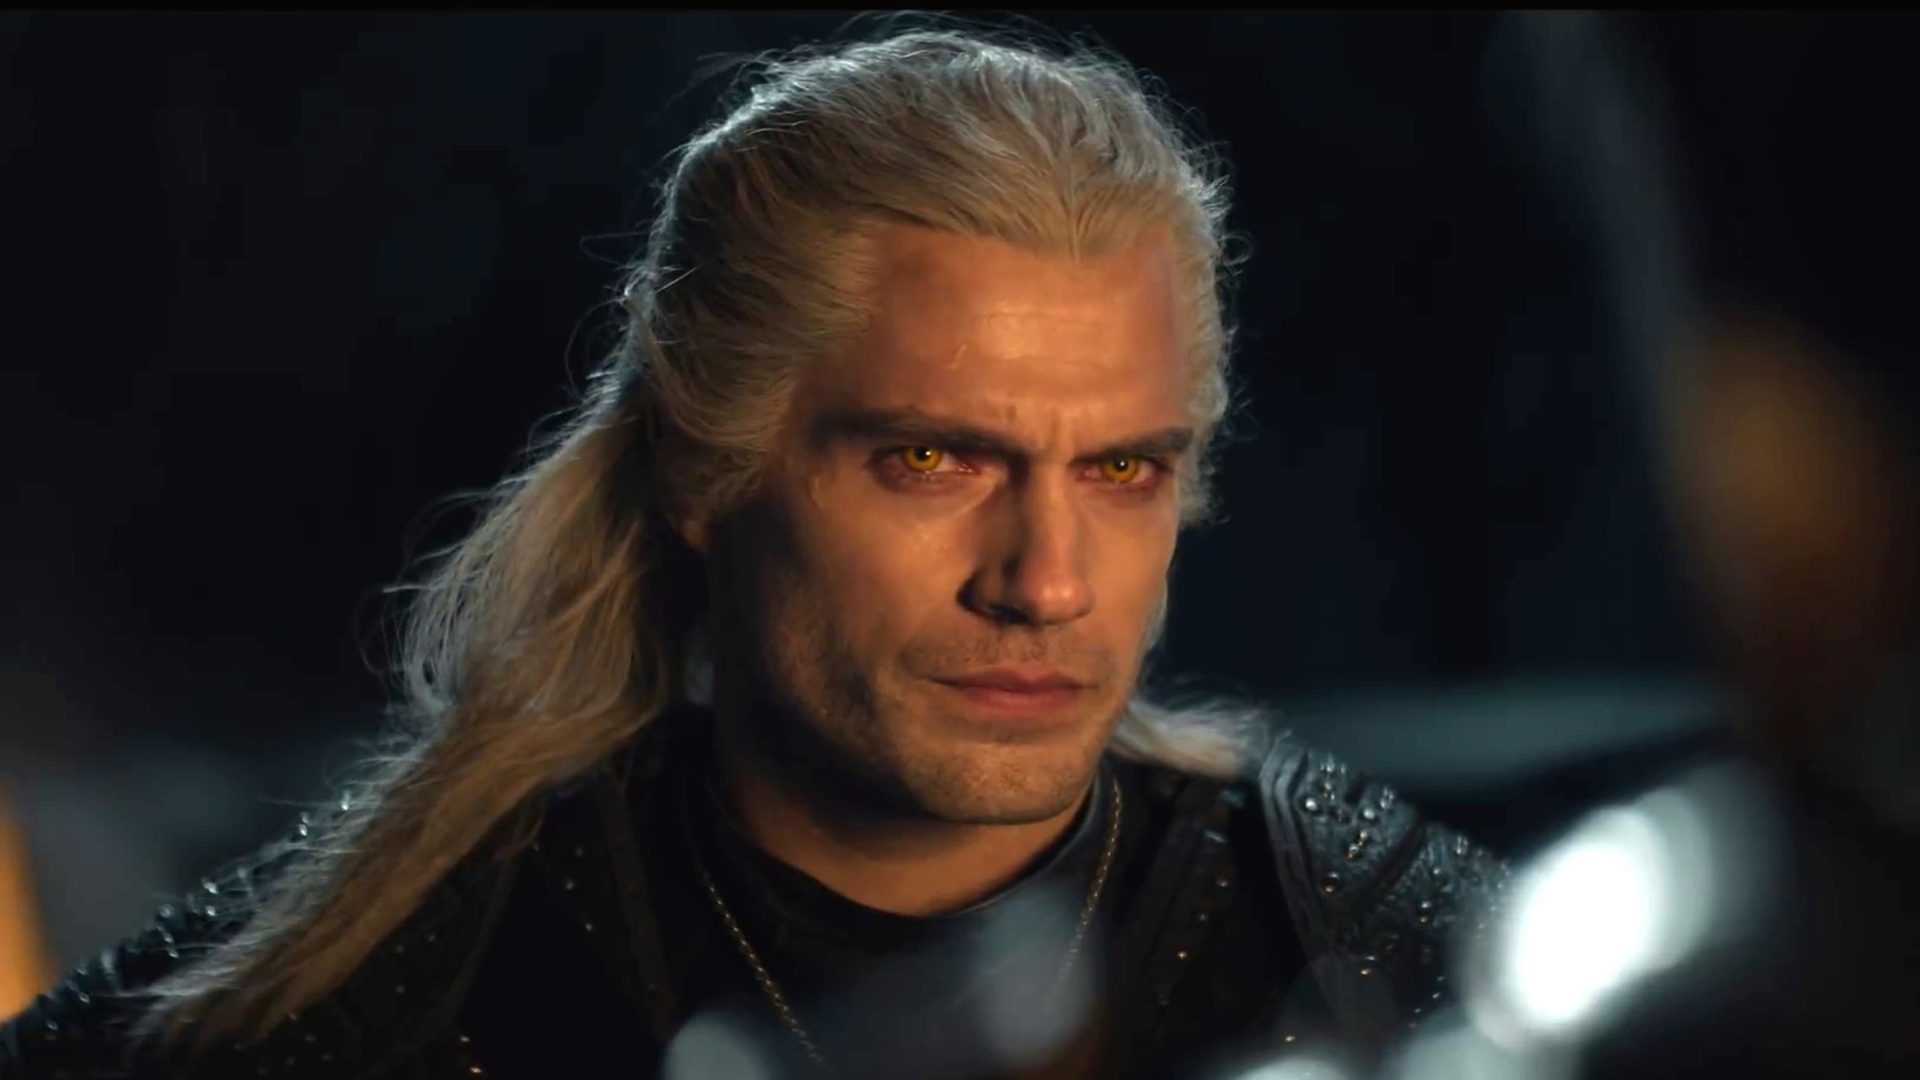 The Witcher Actor Henry Cavill Is A Big Gamer Who Held